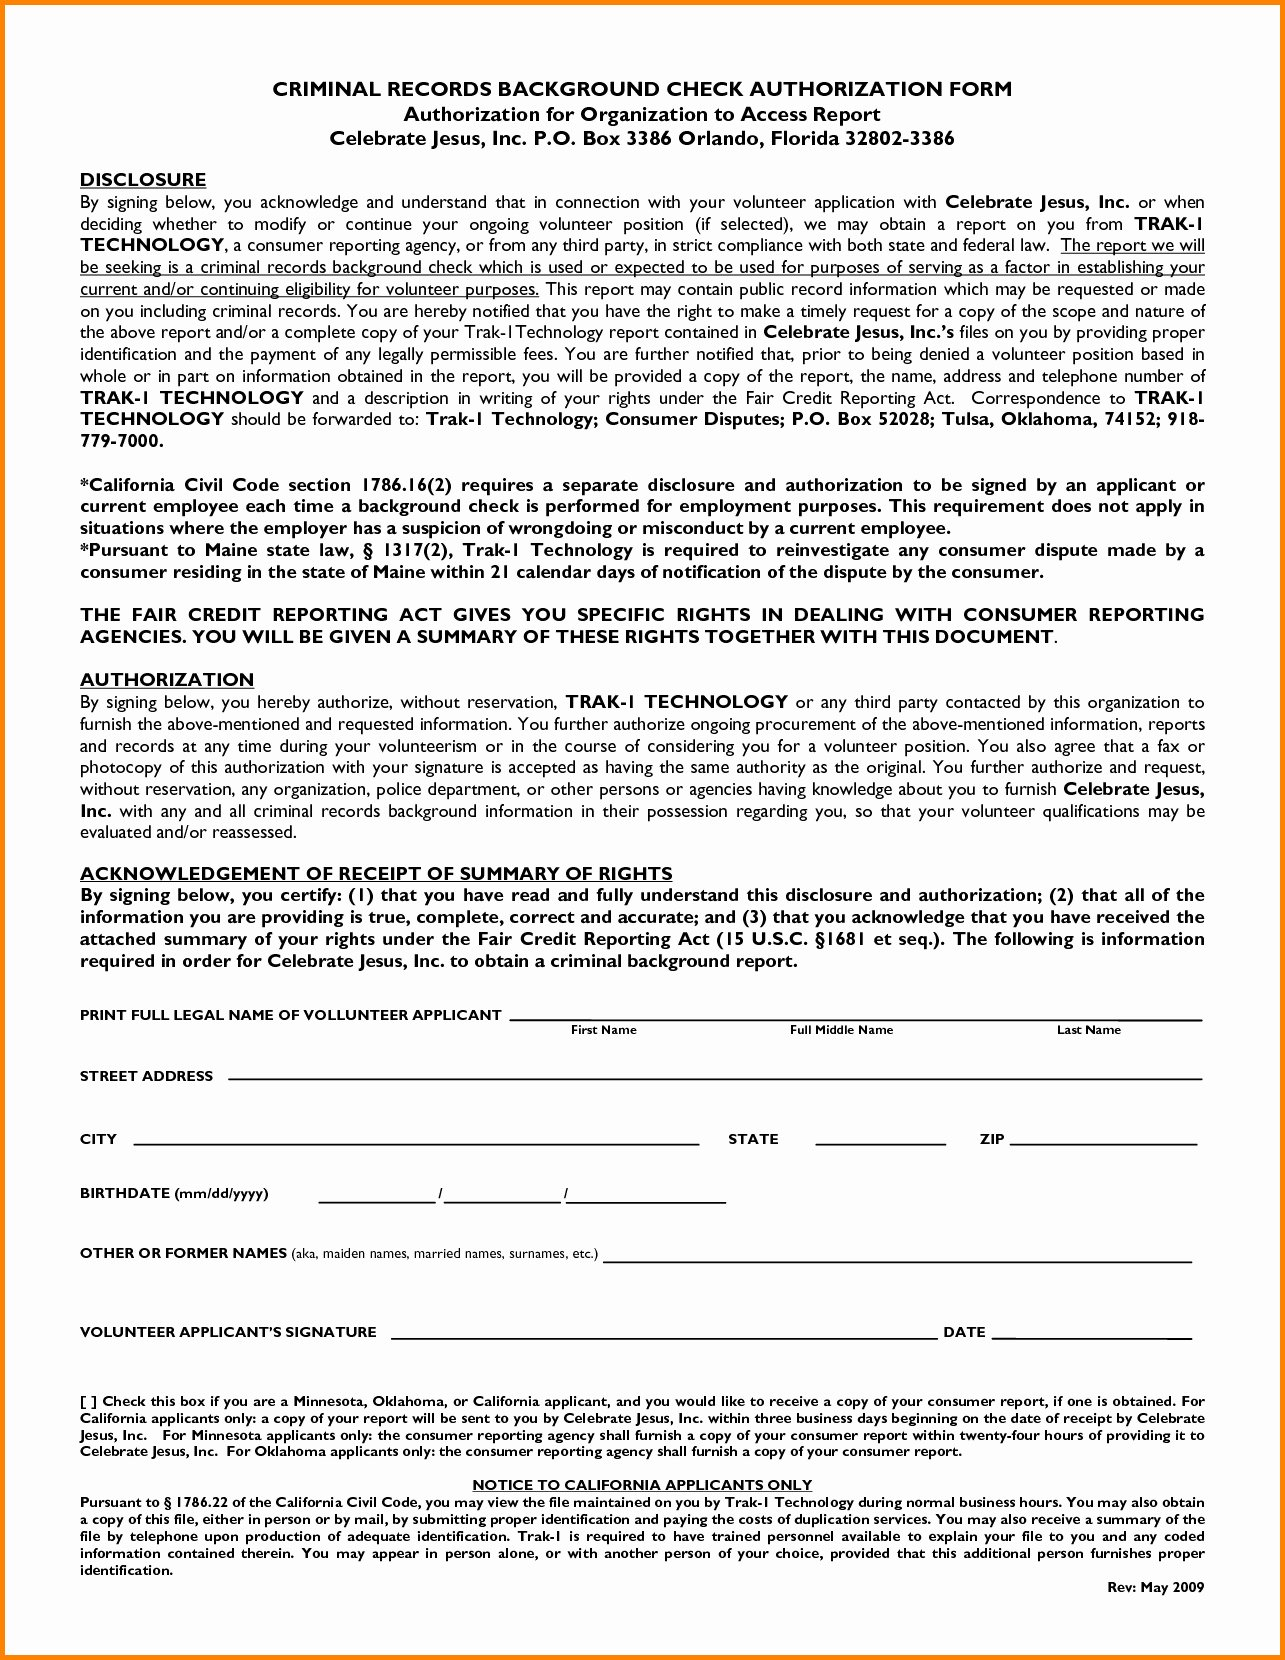 Background Check form Template Awesome Background Check Authorization form Template California